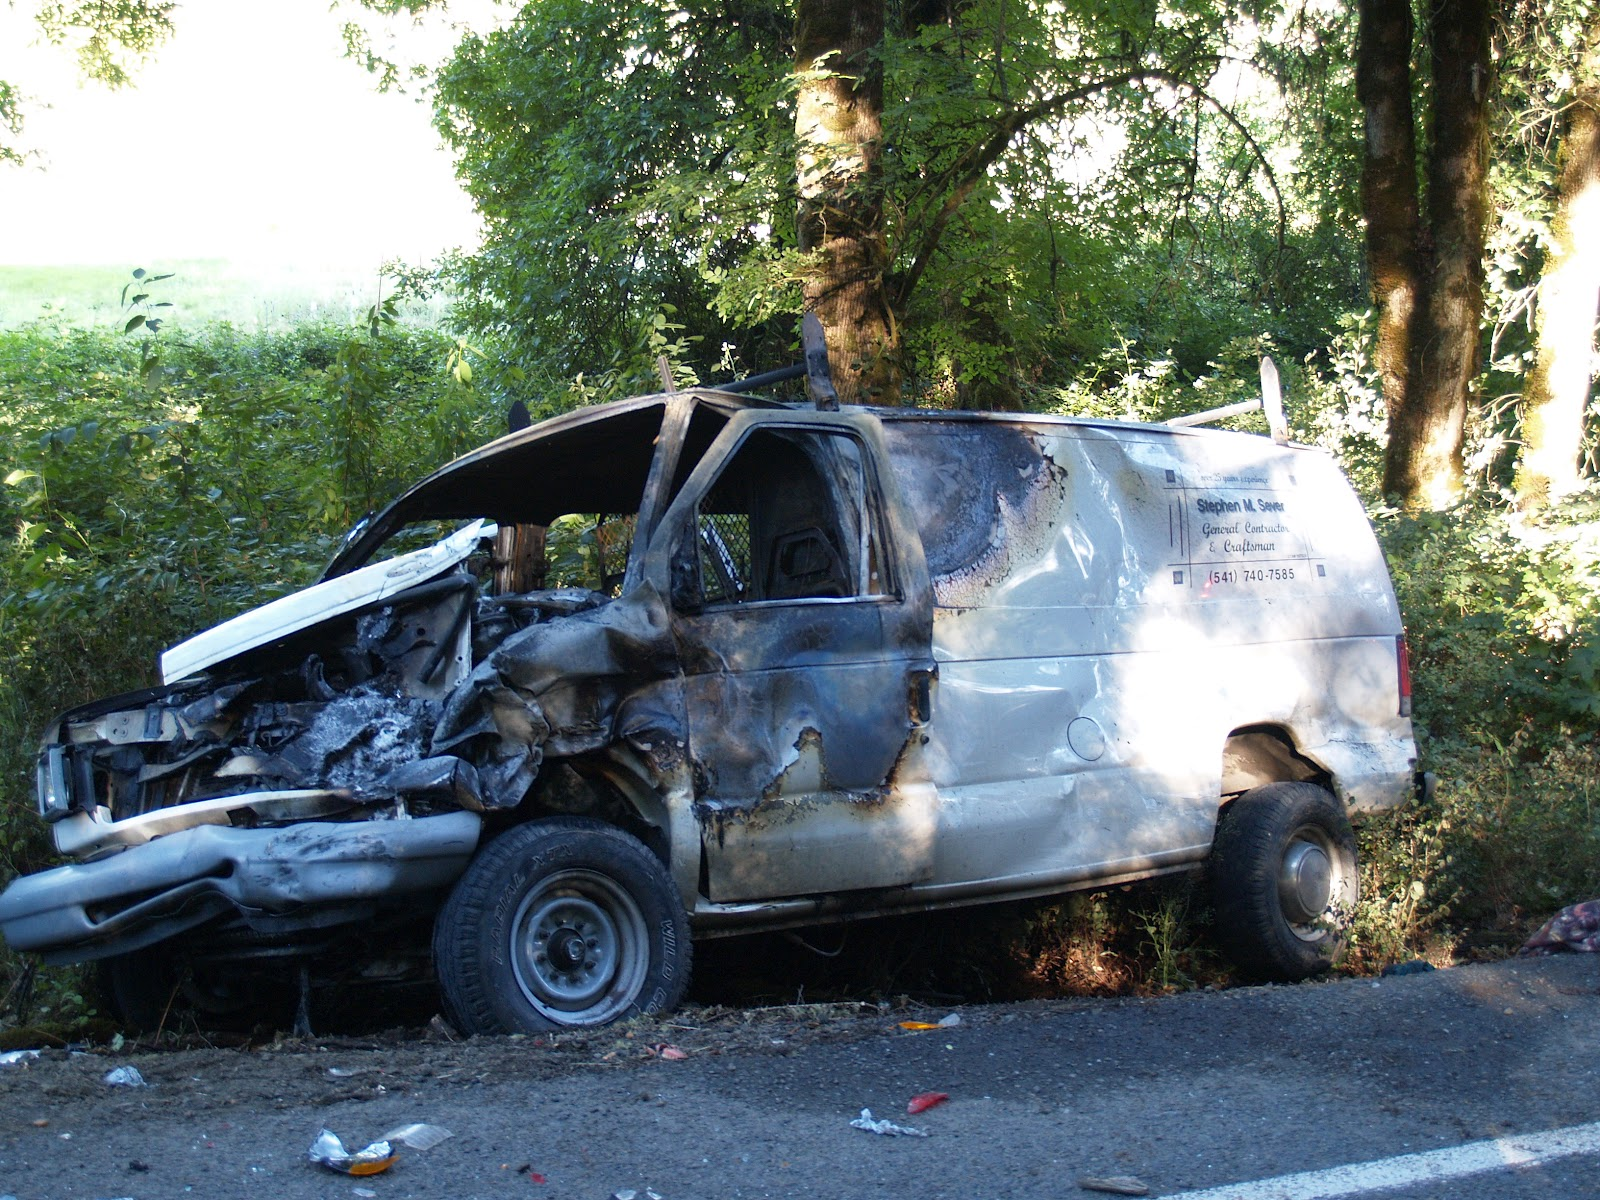 Vehicle Accident News Stories & Articles: Fiery crash near Philomath